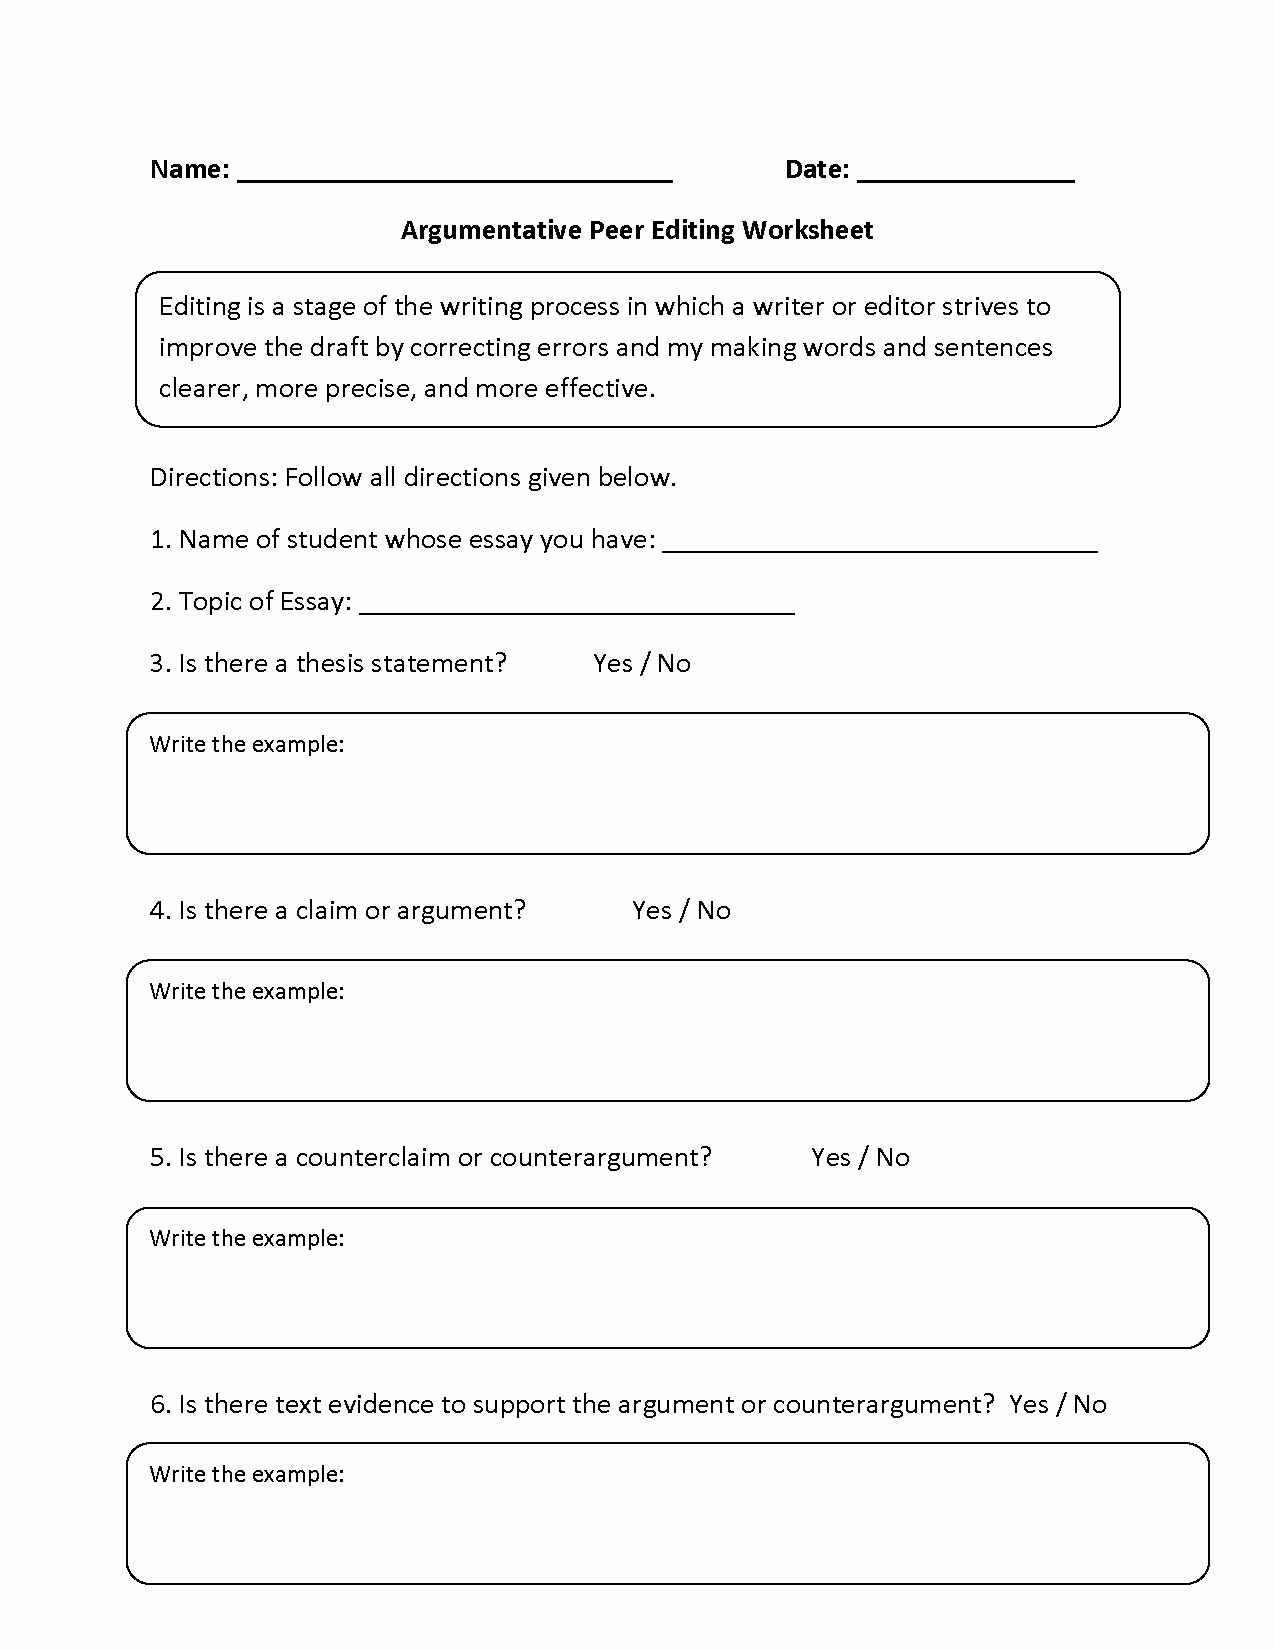 Editing and Proofreading Worksheets Lovely Editing and Proofreading Worksheets High School